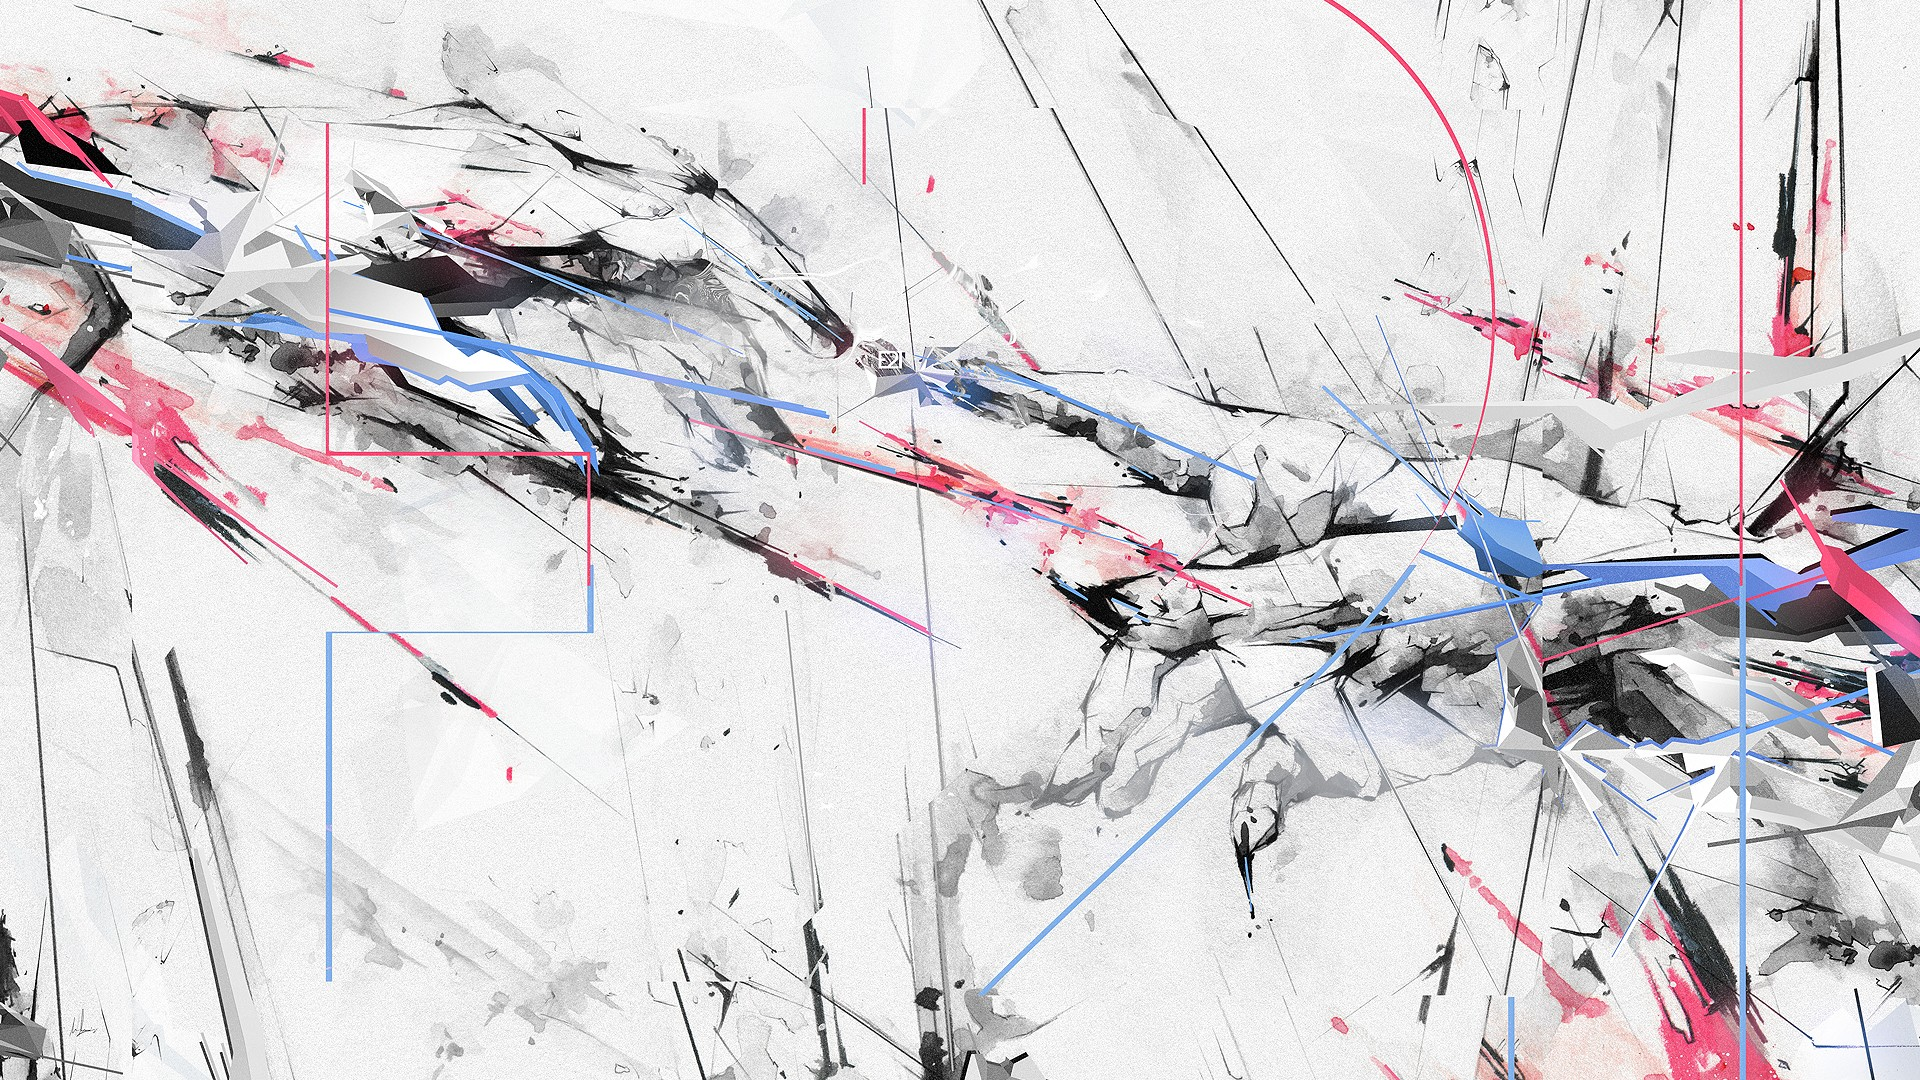 Abstract white hands digital art artwork wallpaper | 1920x1080 | 210119 | WallpaperUP